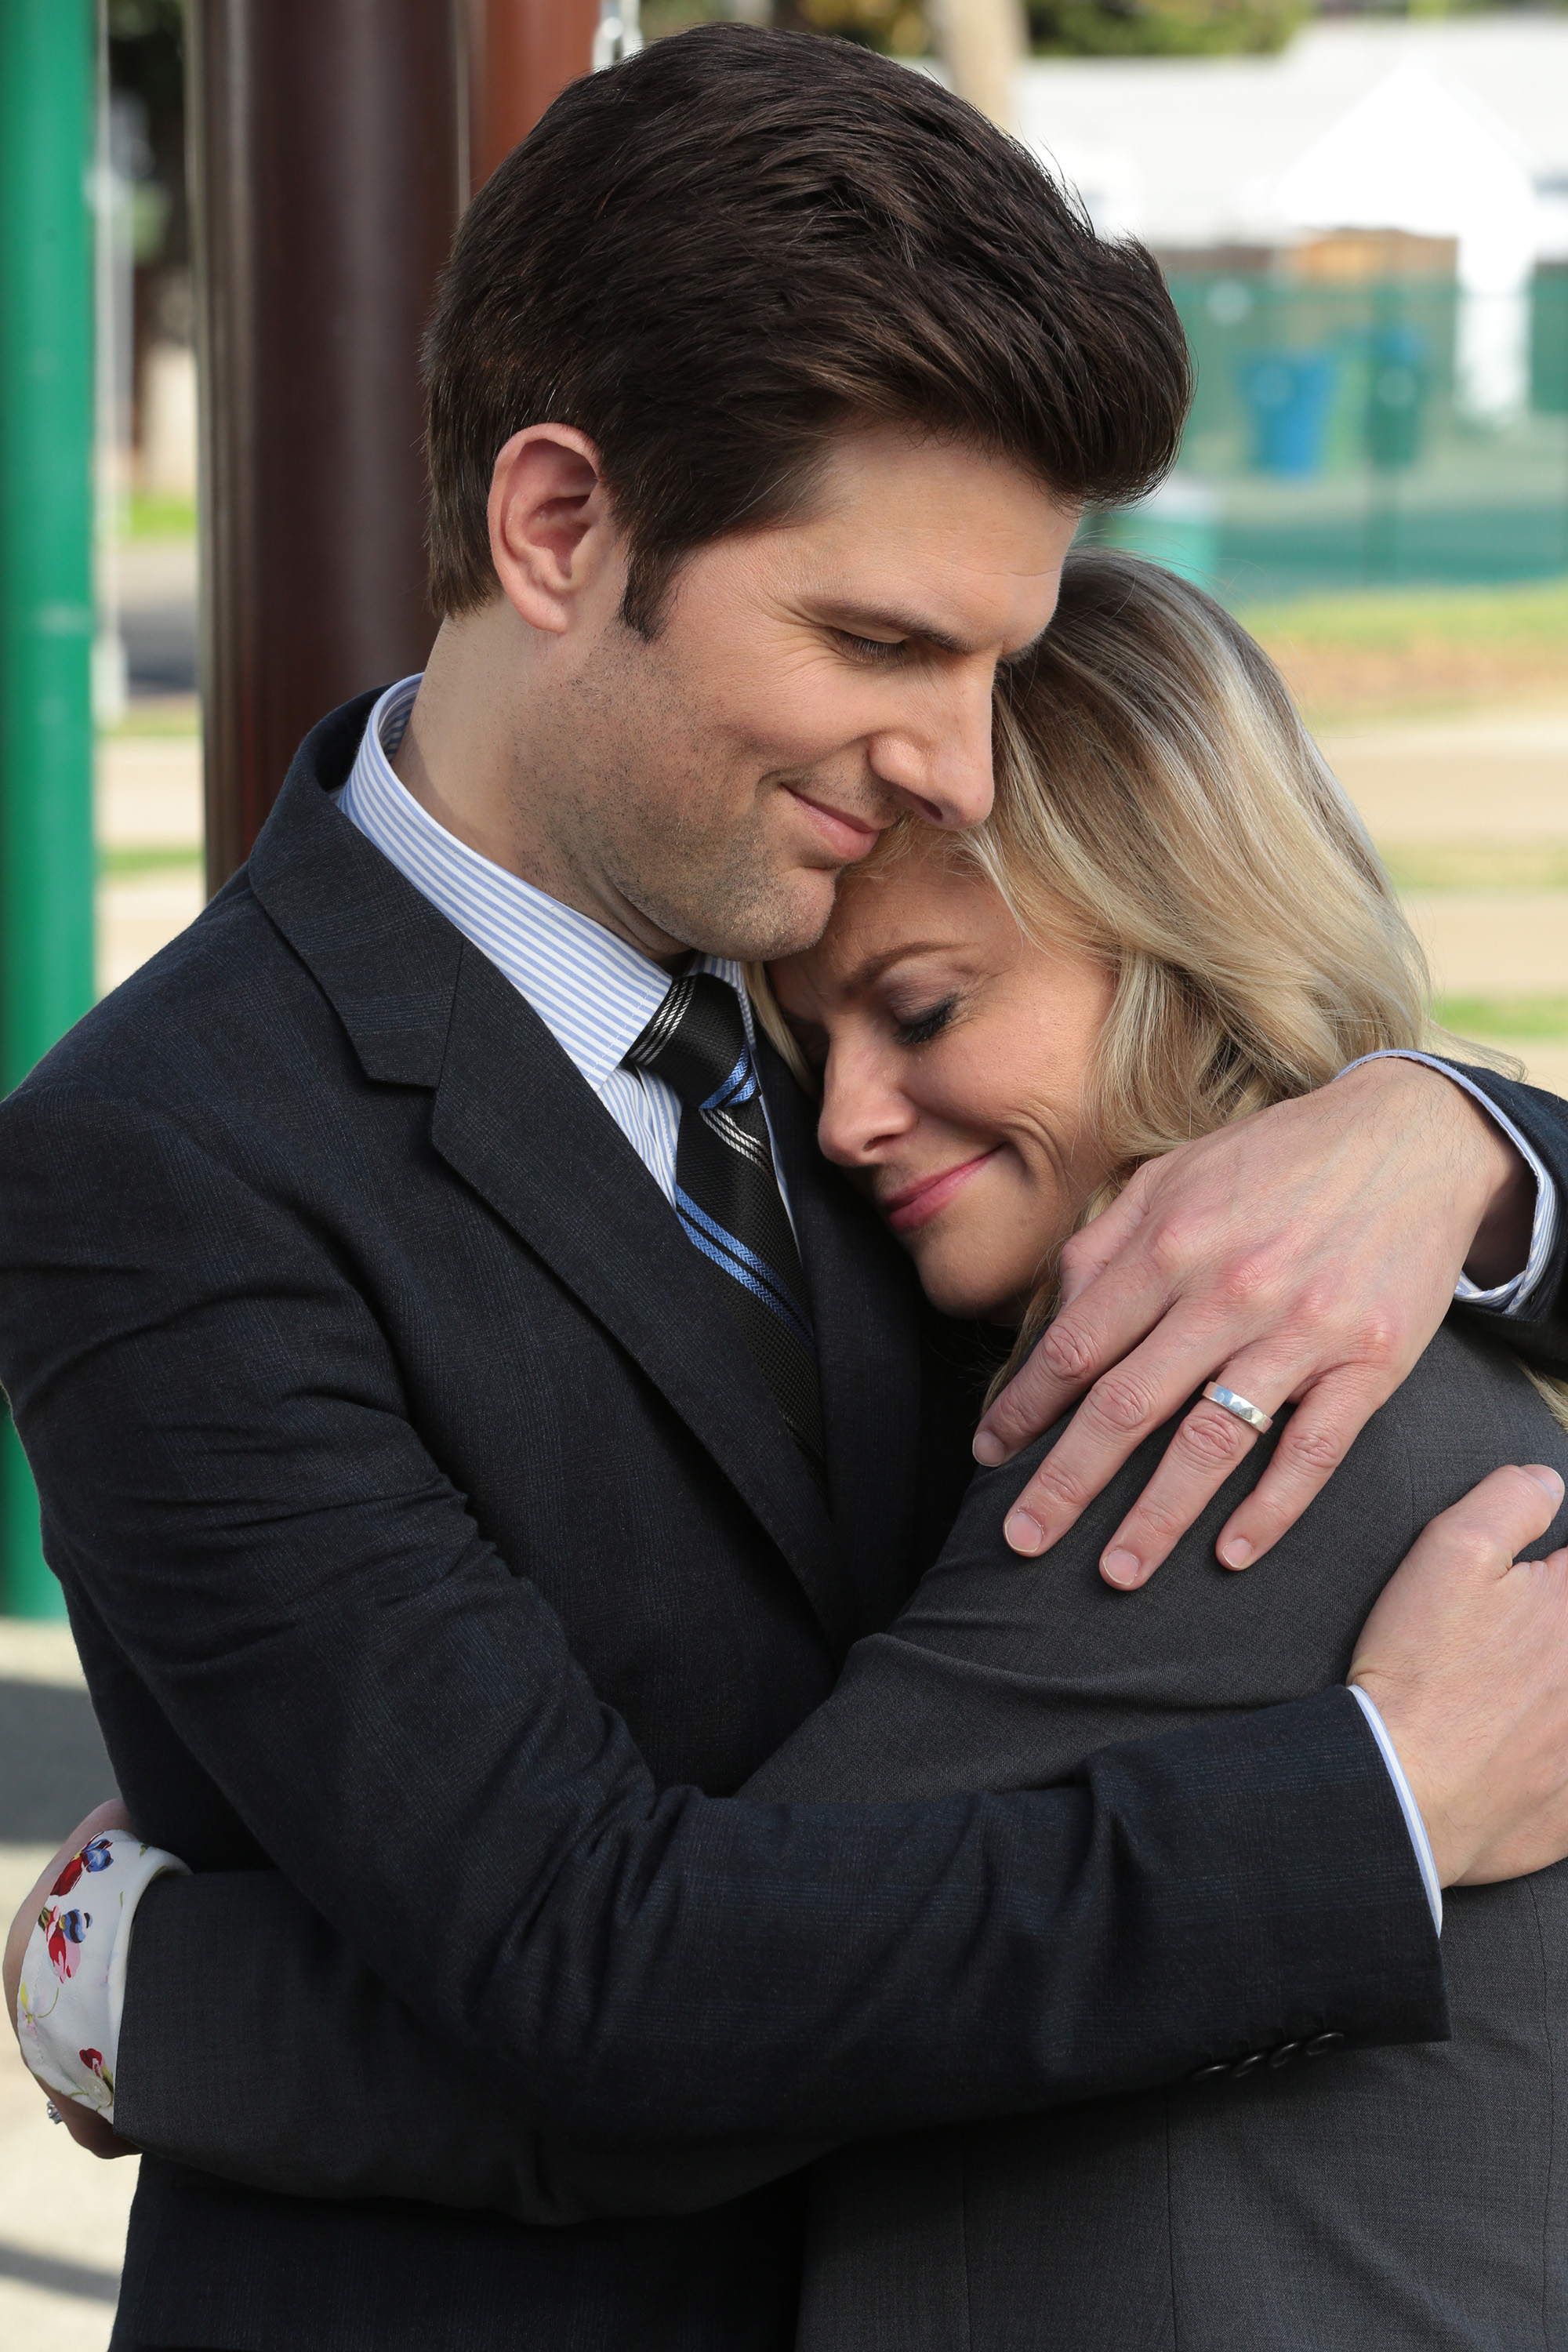 (l-r) Adam Scott as Ben Wyatt, Amy Poehler as Leslie Knope on Parks and Recreation